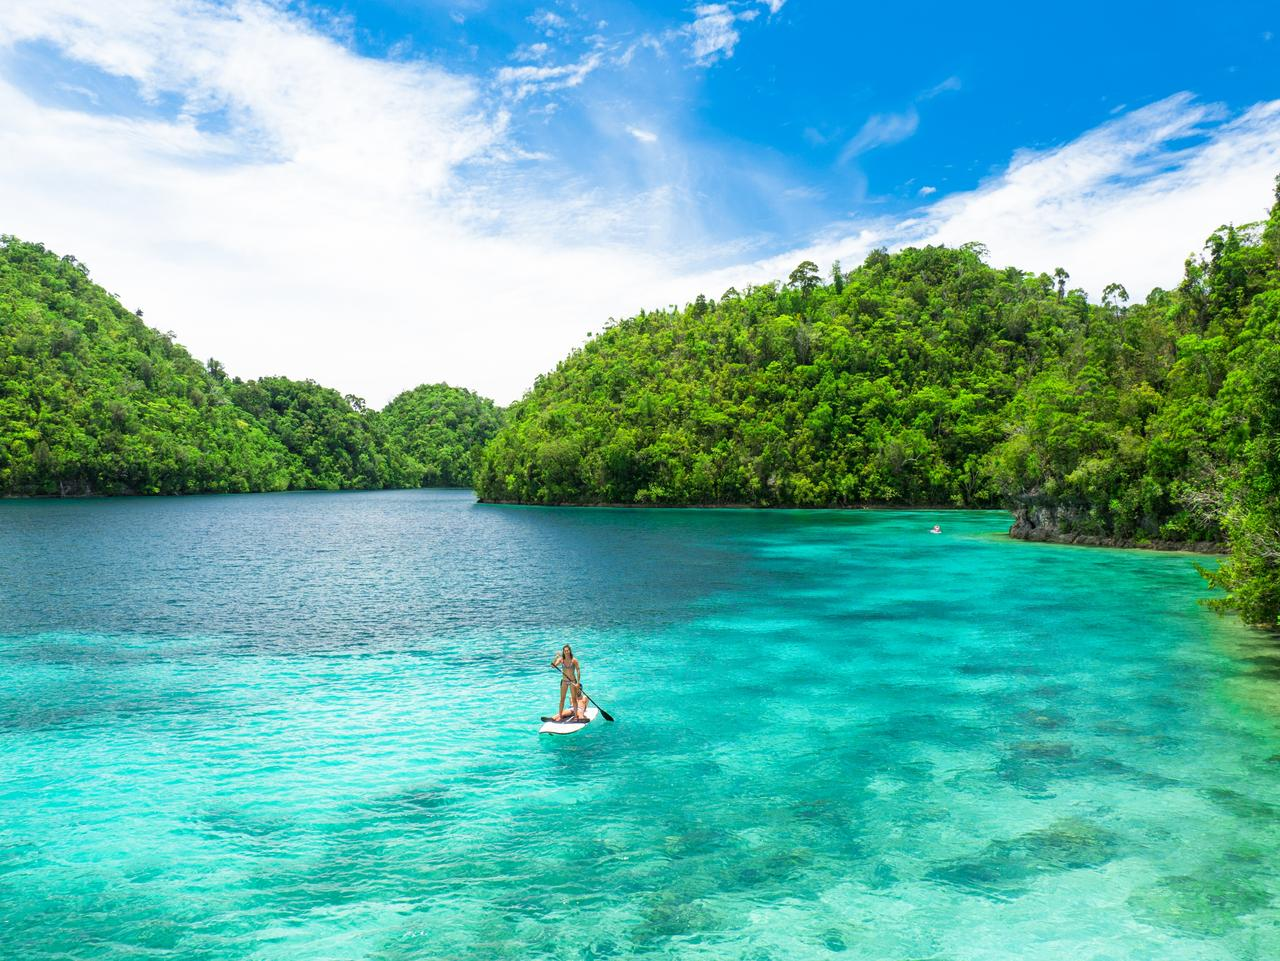 ESCAPE: Mark Fitz, Siargao Philippines - Sugba Lagoon in Siargao. Picture: Mark Fitz